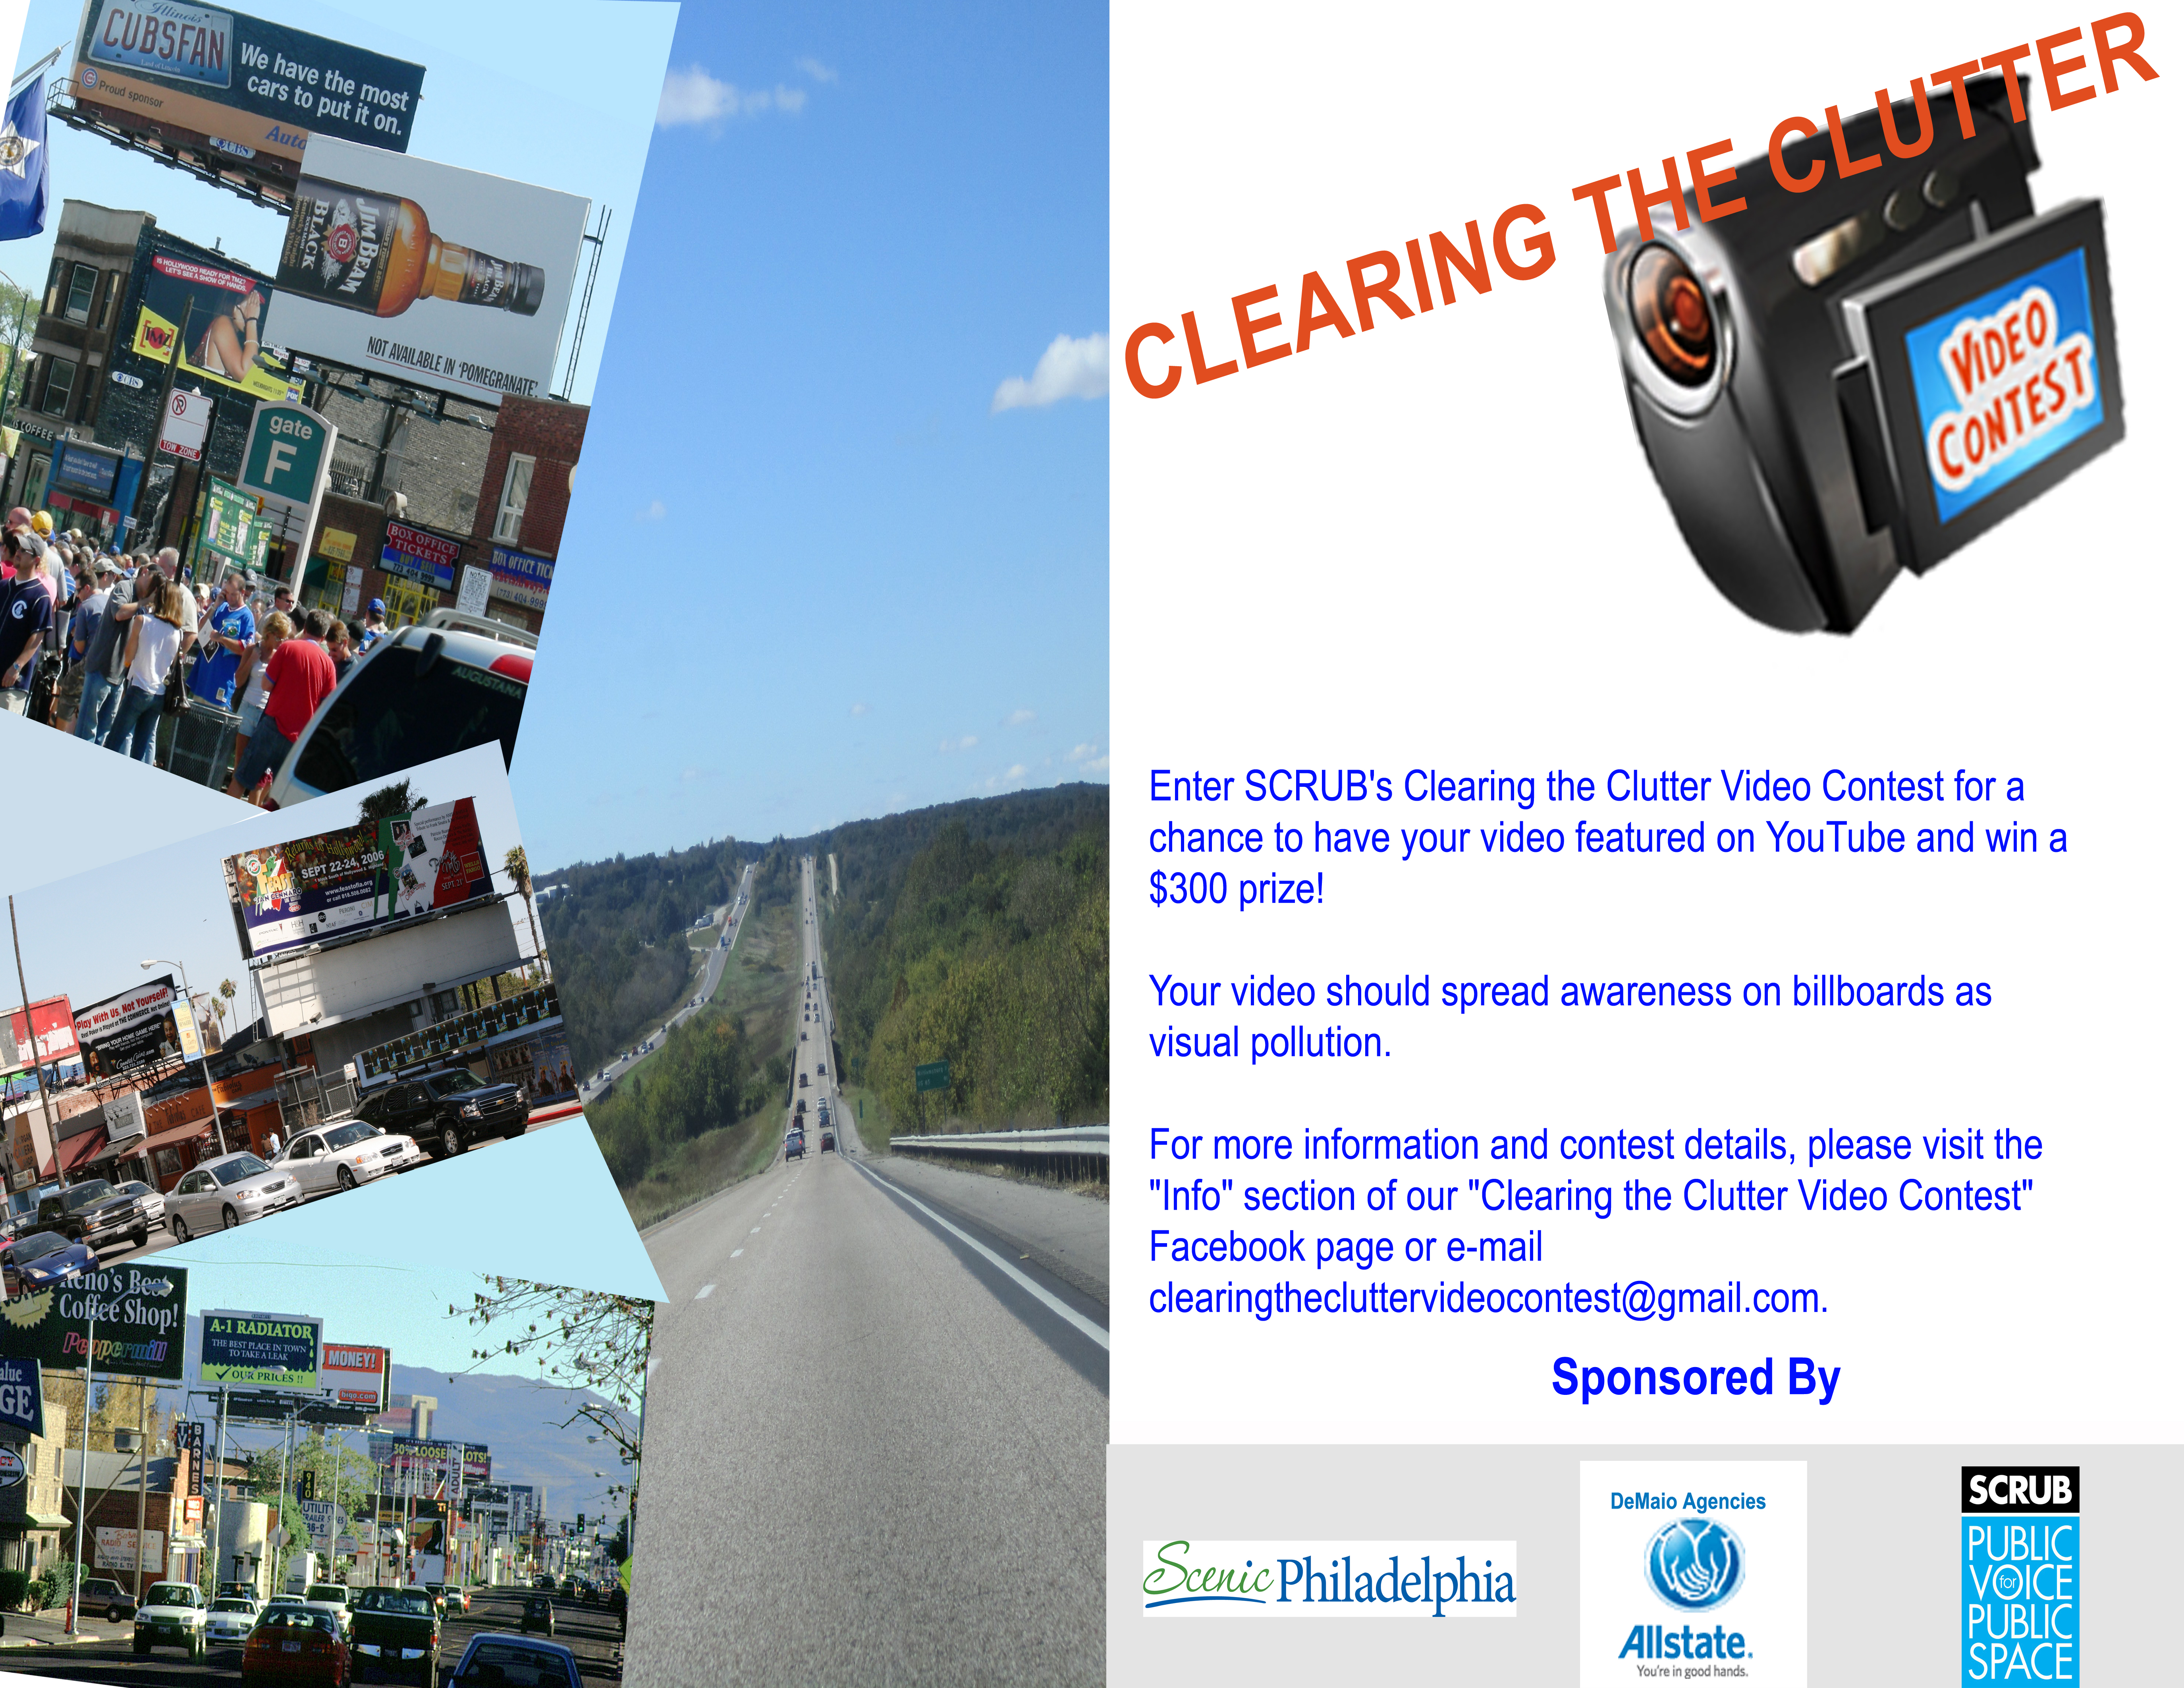 Enter SCRUB's Clearing the Clutter Video Contest